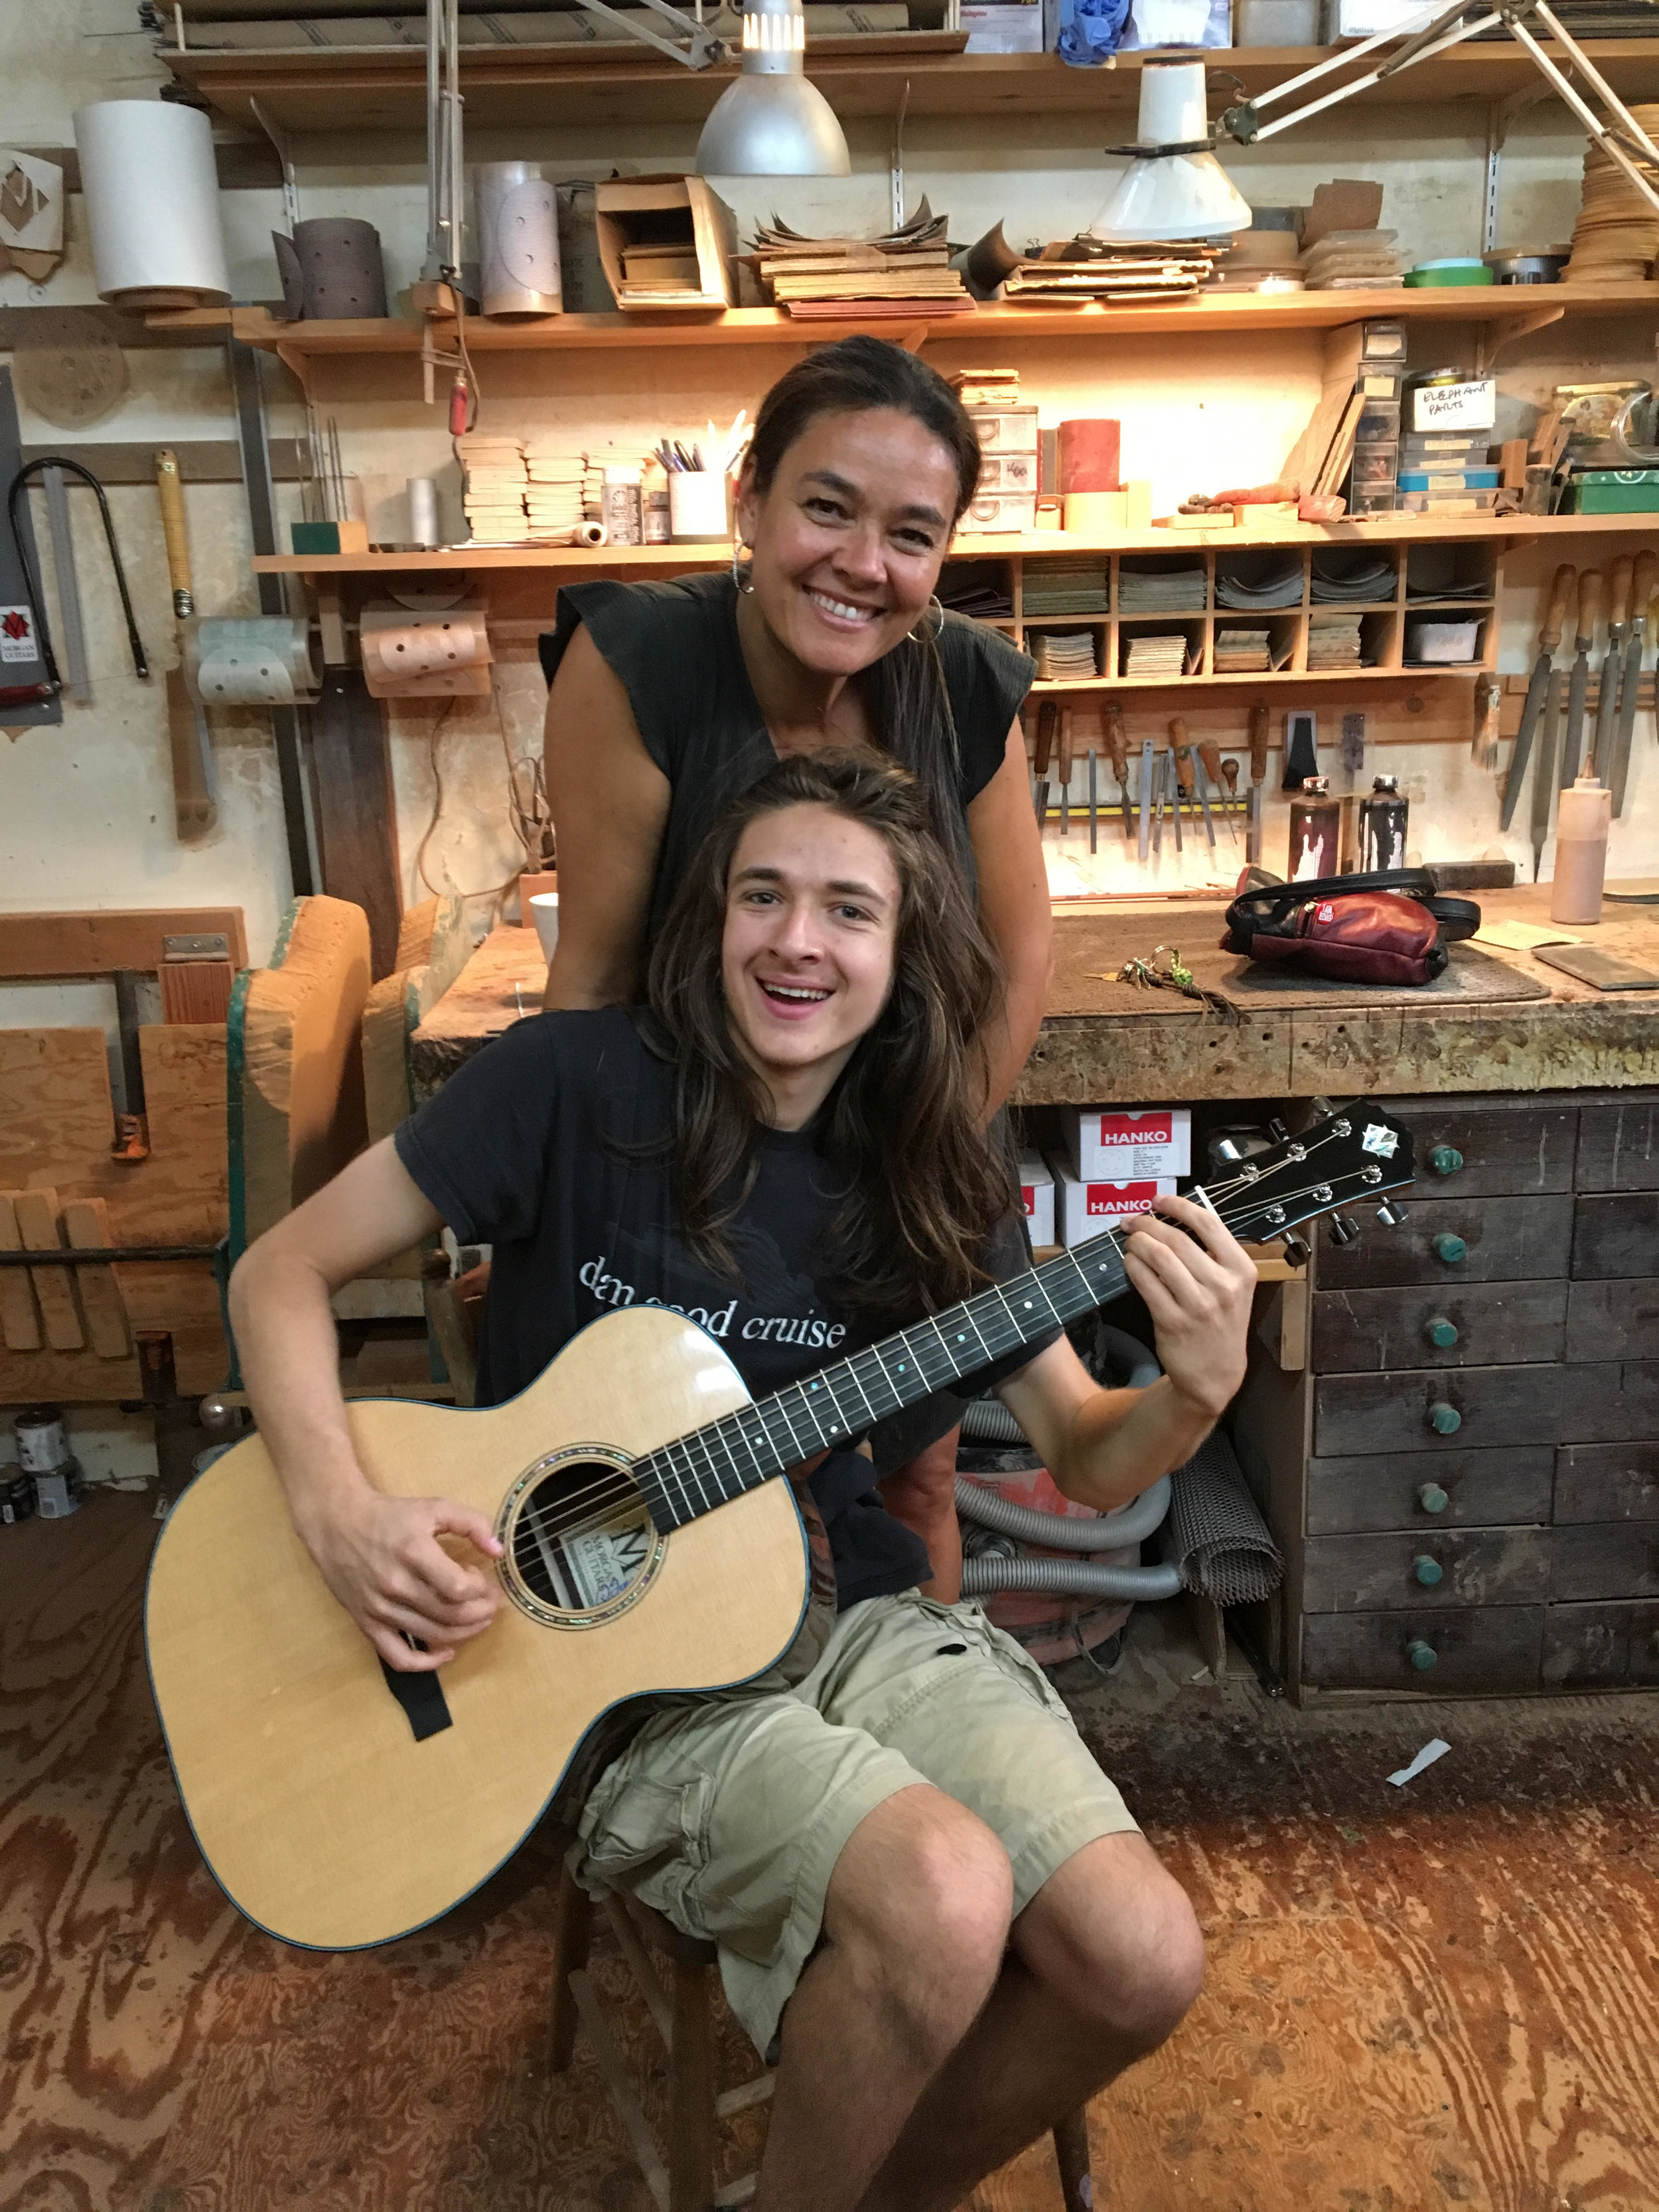 Farley and his mother, Katrina, trying out his new guitar in David's workshop.